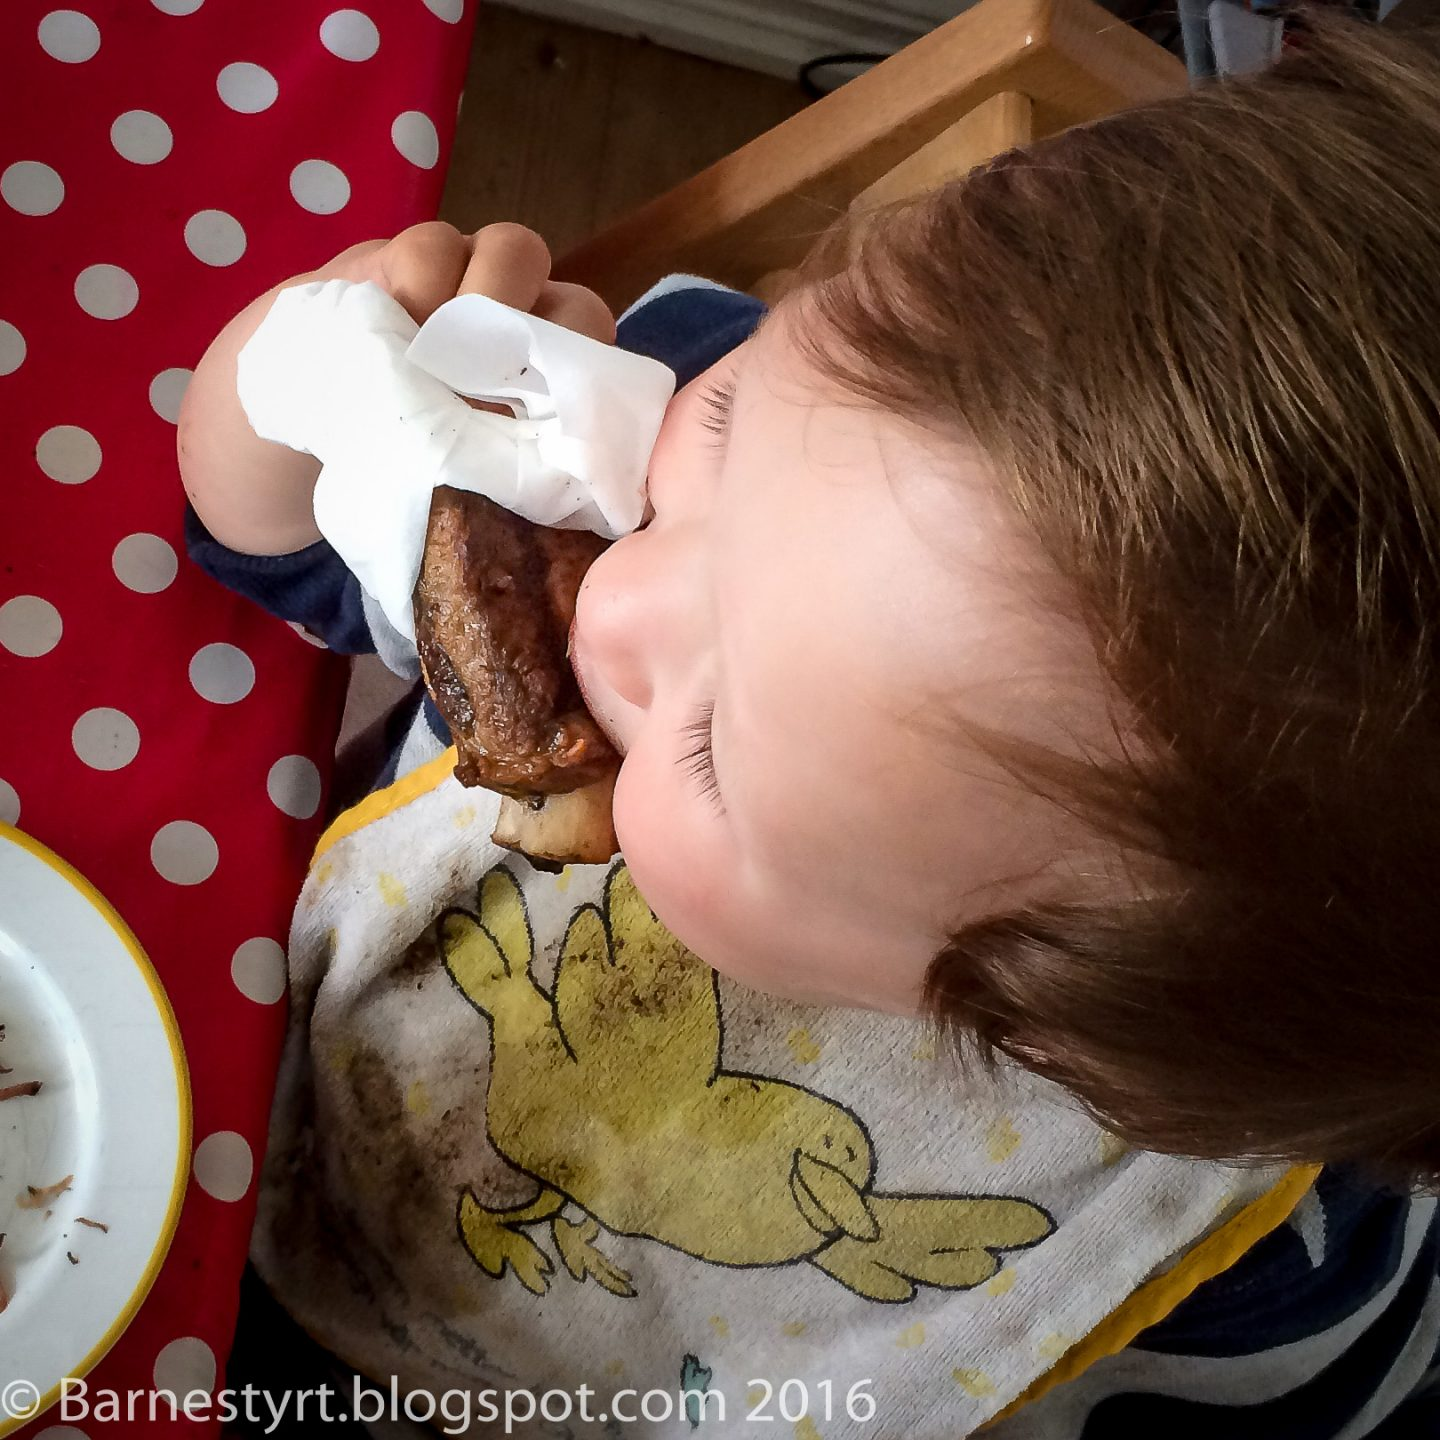 Child eating short ribs